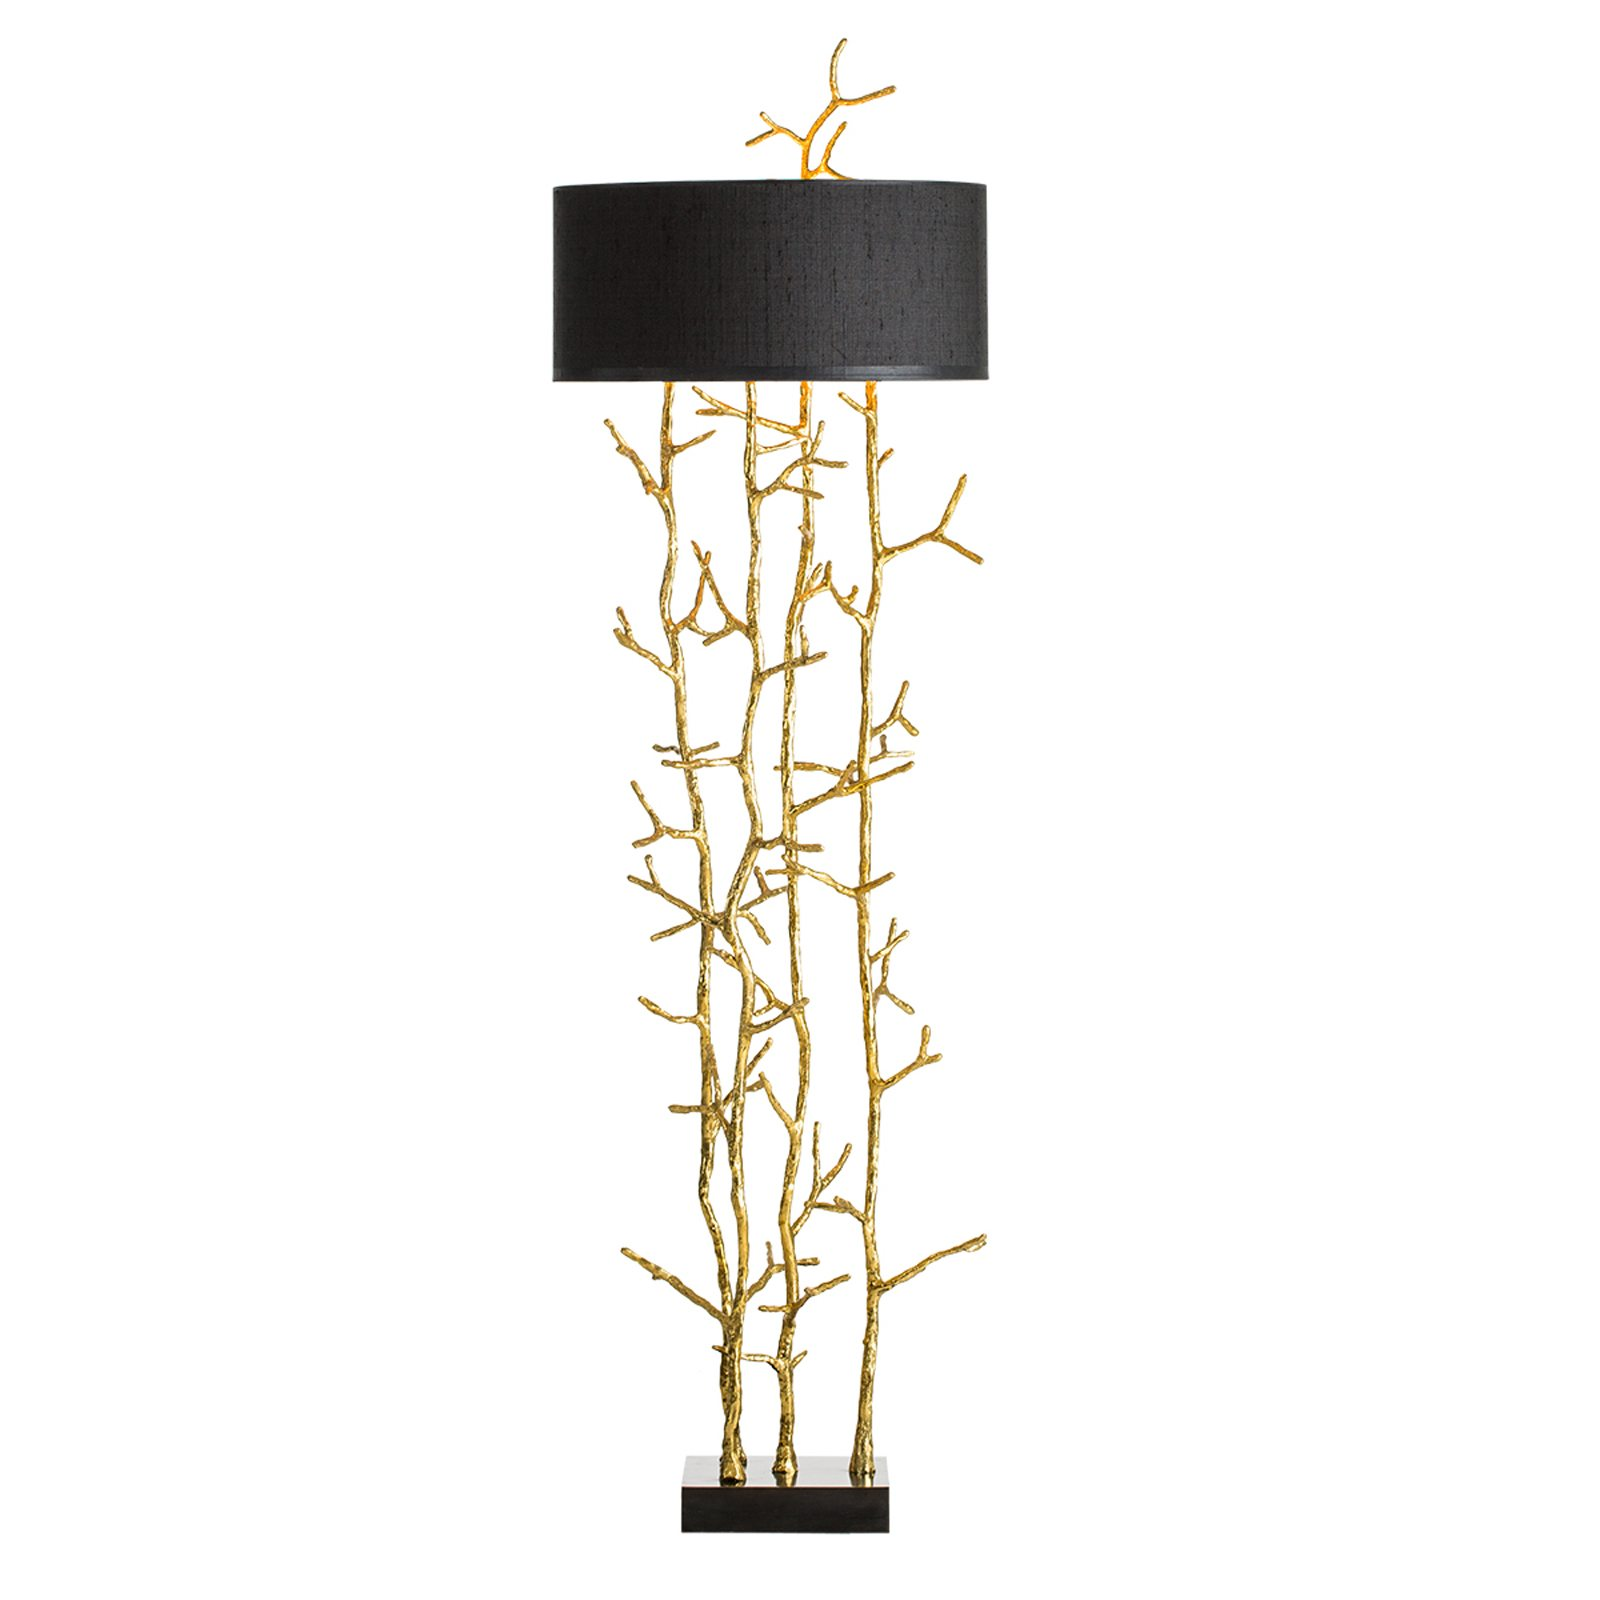 Fauna Floor Lamp by Bonham & Bonham